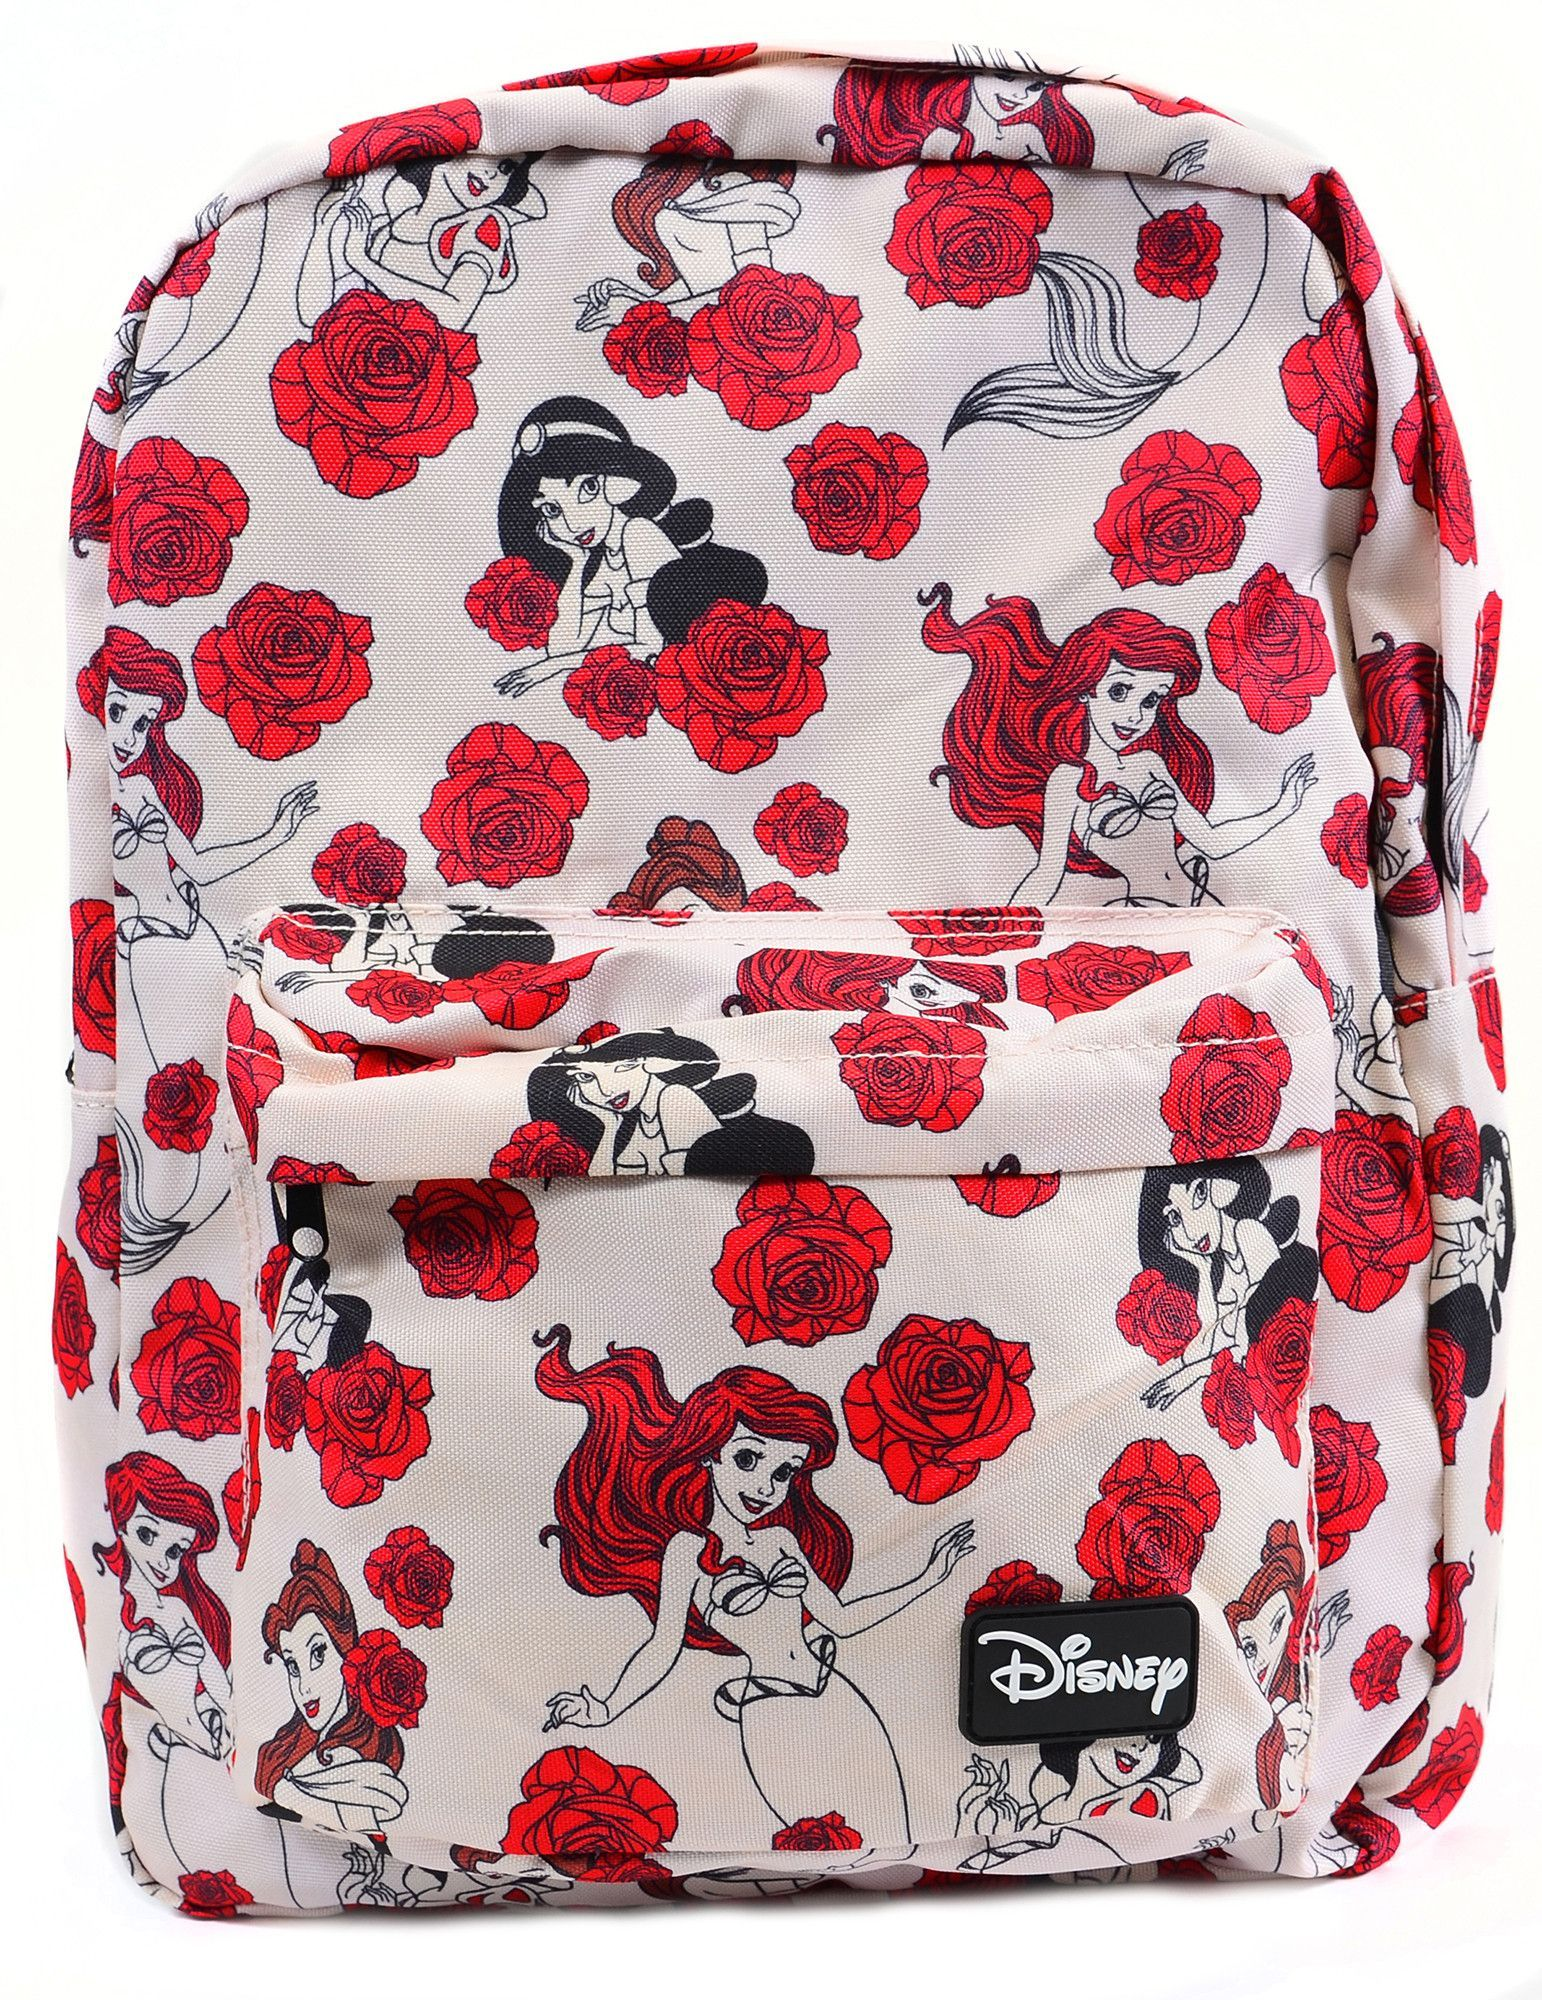 Limited Disney Princess Roses Canvas Zipper School Backpack by ...